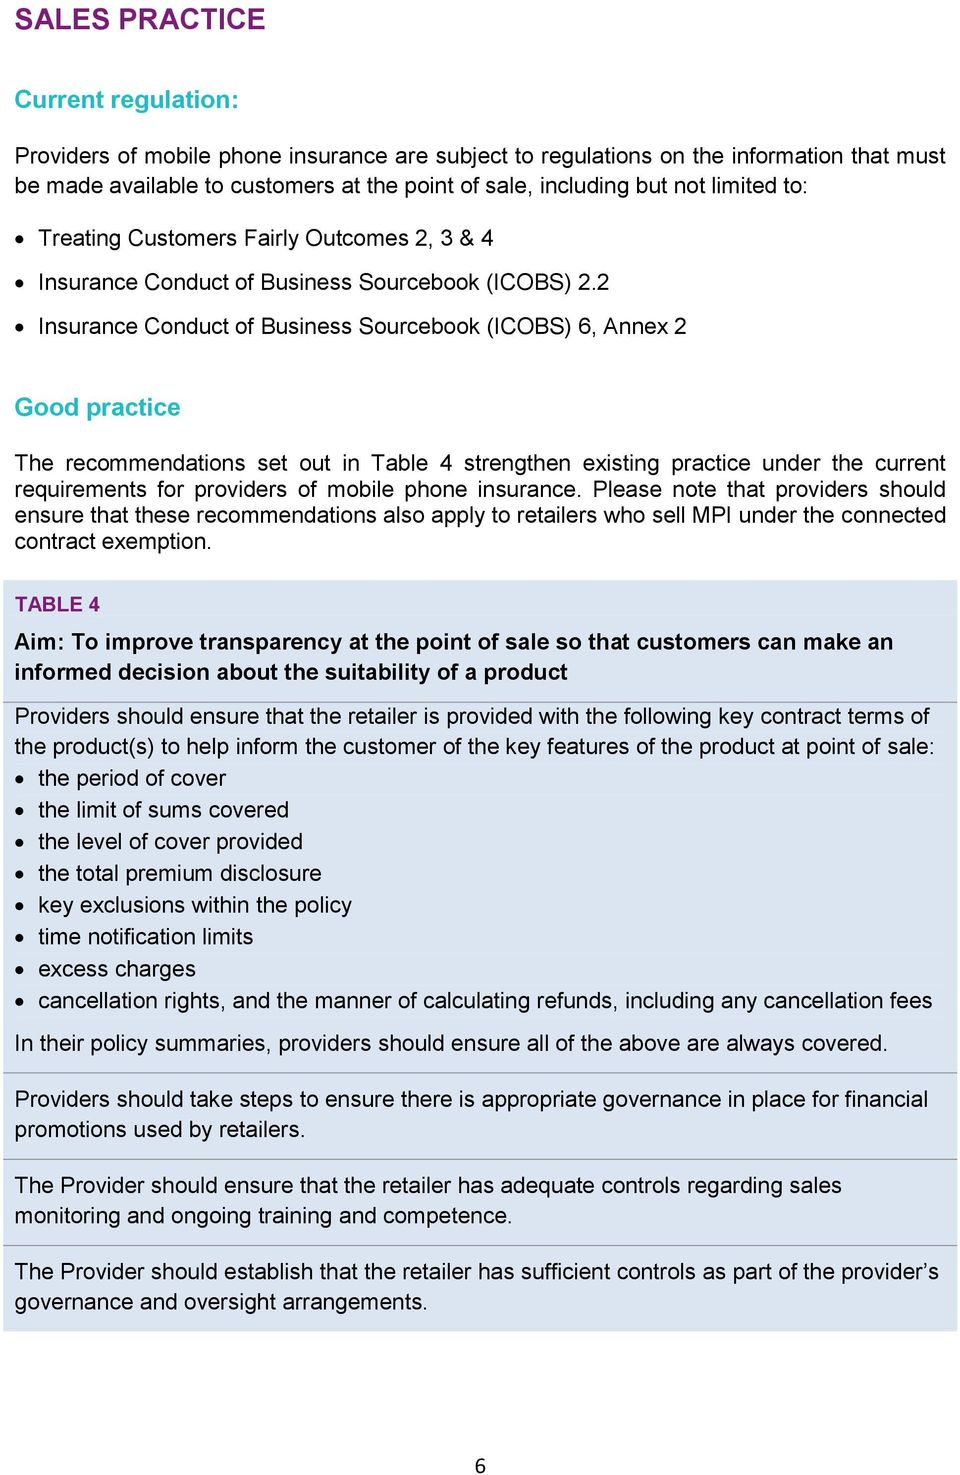 2 Insurance Conduct of Business Sourcebook (ICOBS) 6, Annex 2 Good practice The recommendations set out in Table 4 strengthen existing practice under the current Please note that providers should